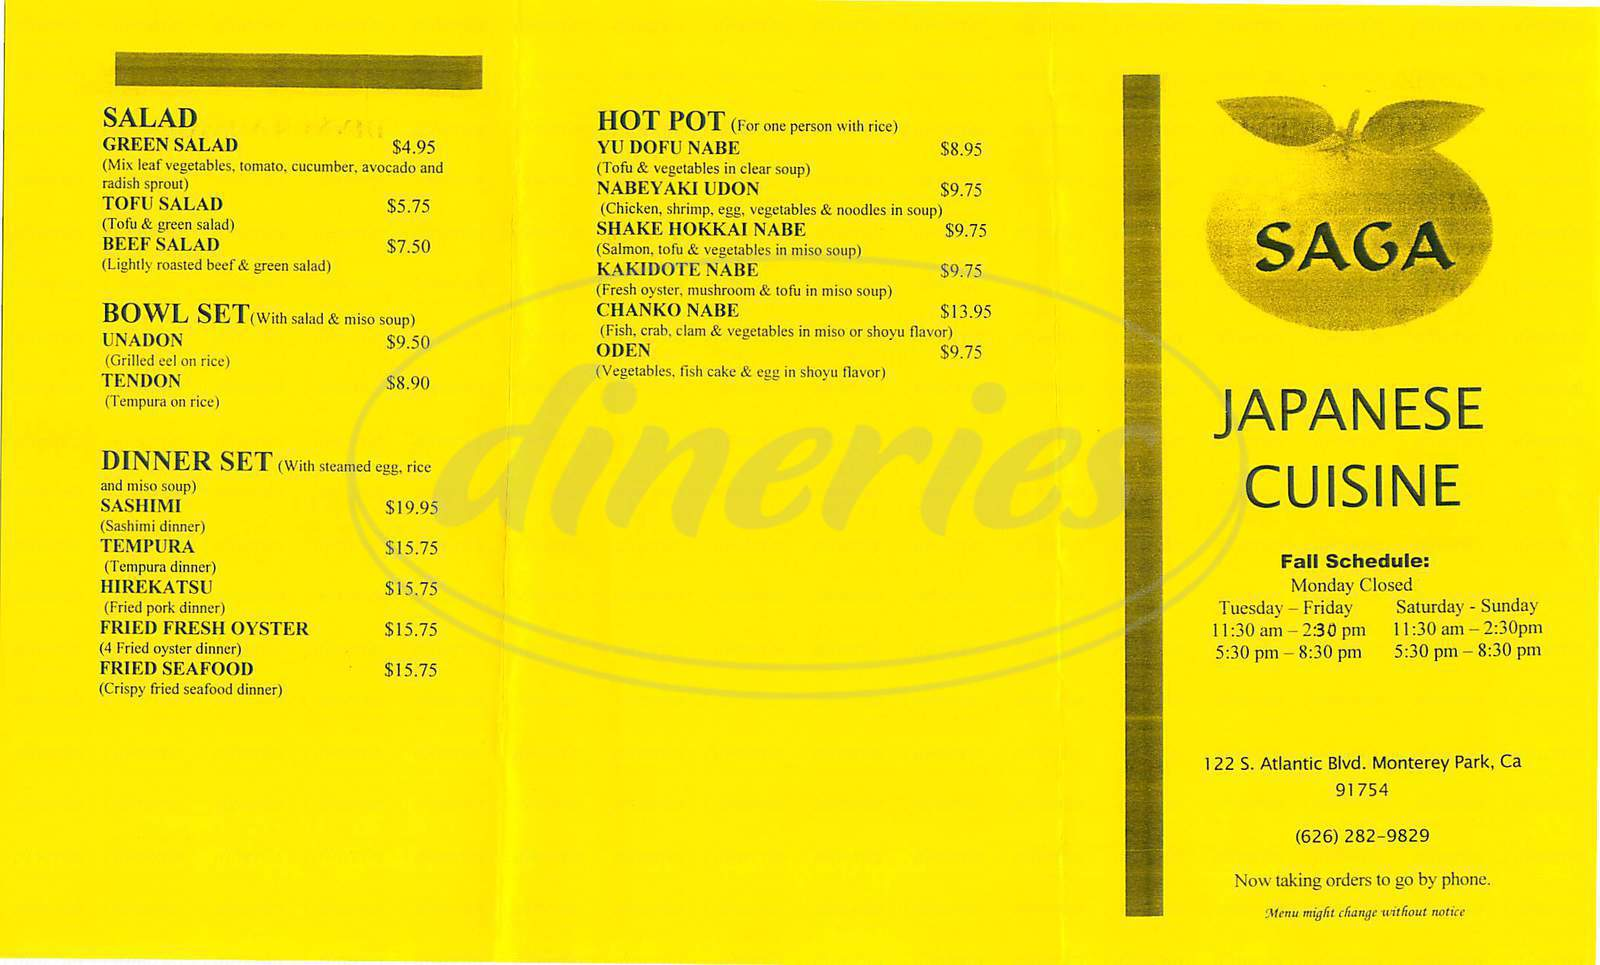 menu for Saga Japanese Cuisine